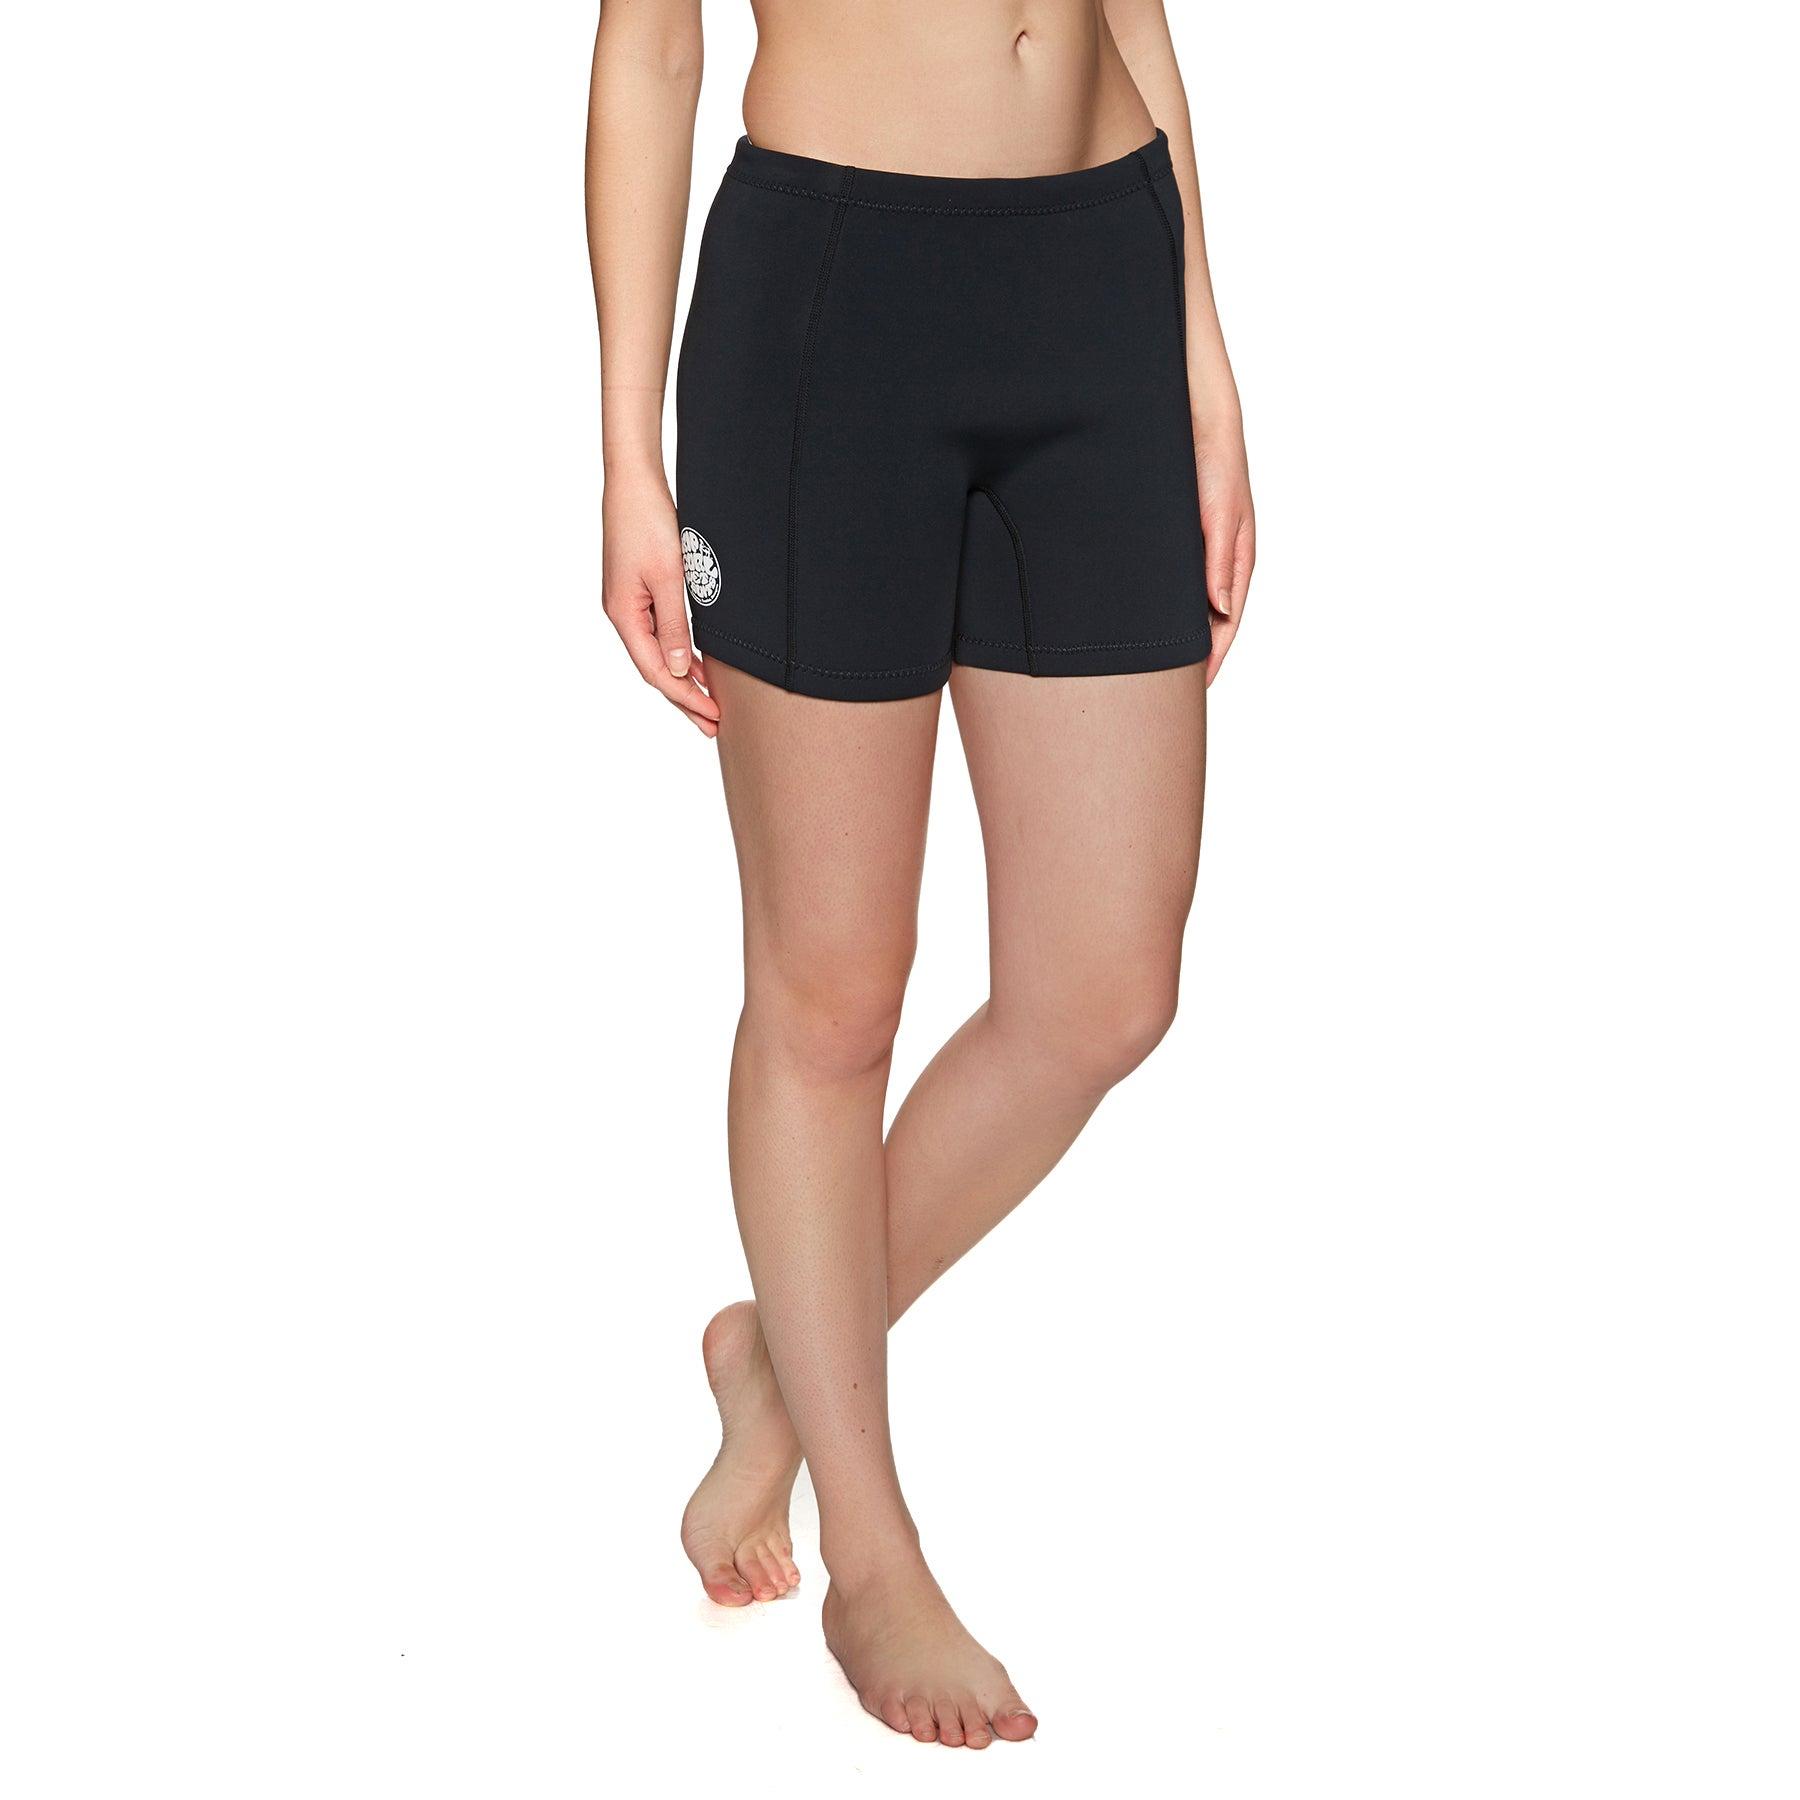 Rip Curl Dawn Patrol 1mm Neo Womens Wetsuit Shorts - Black